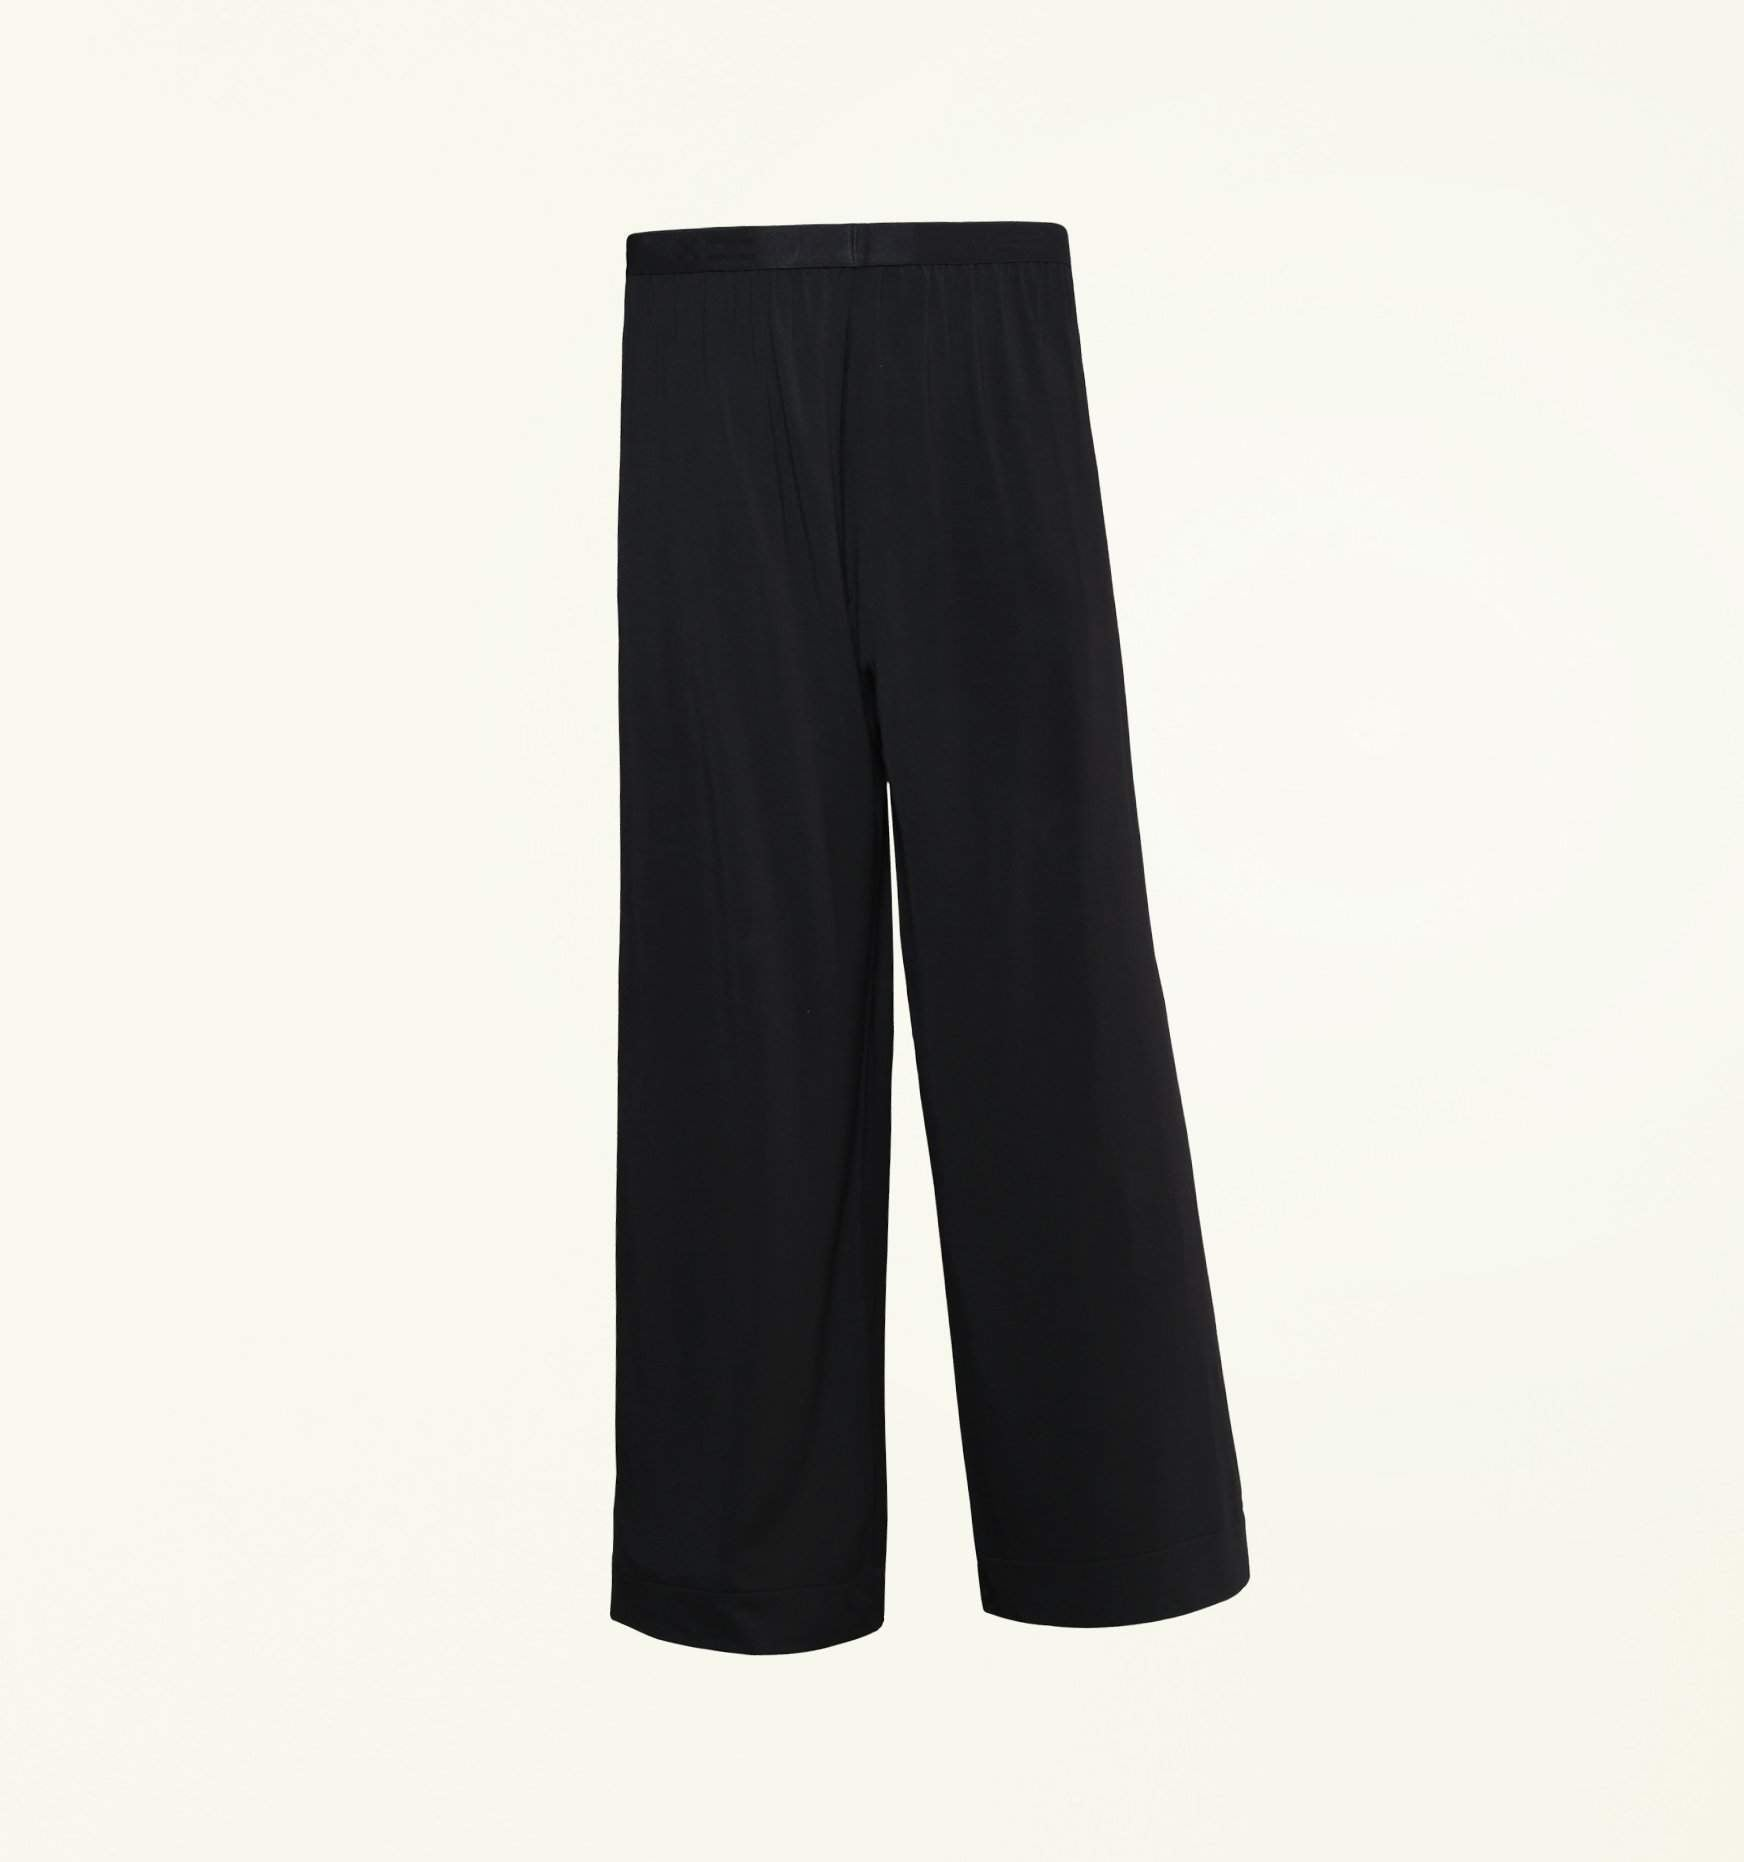 Pajama Pants Micromodal Black Tomboyx Unlabeled Diagram Of The Muscular System Heather Blog